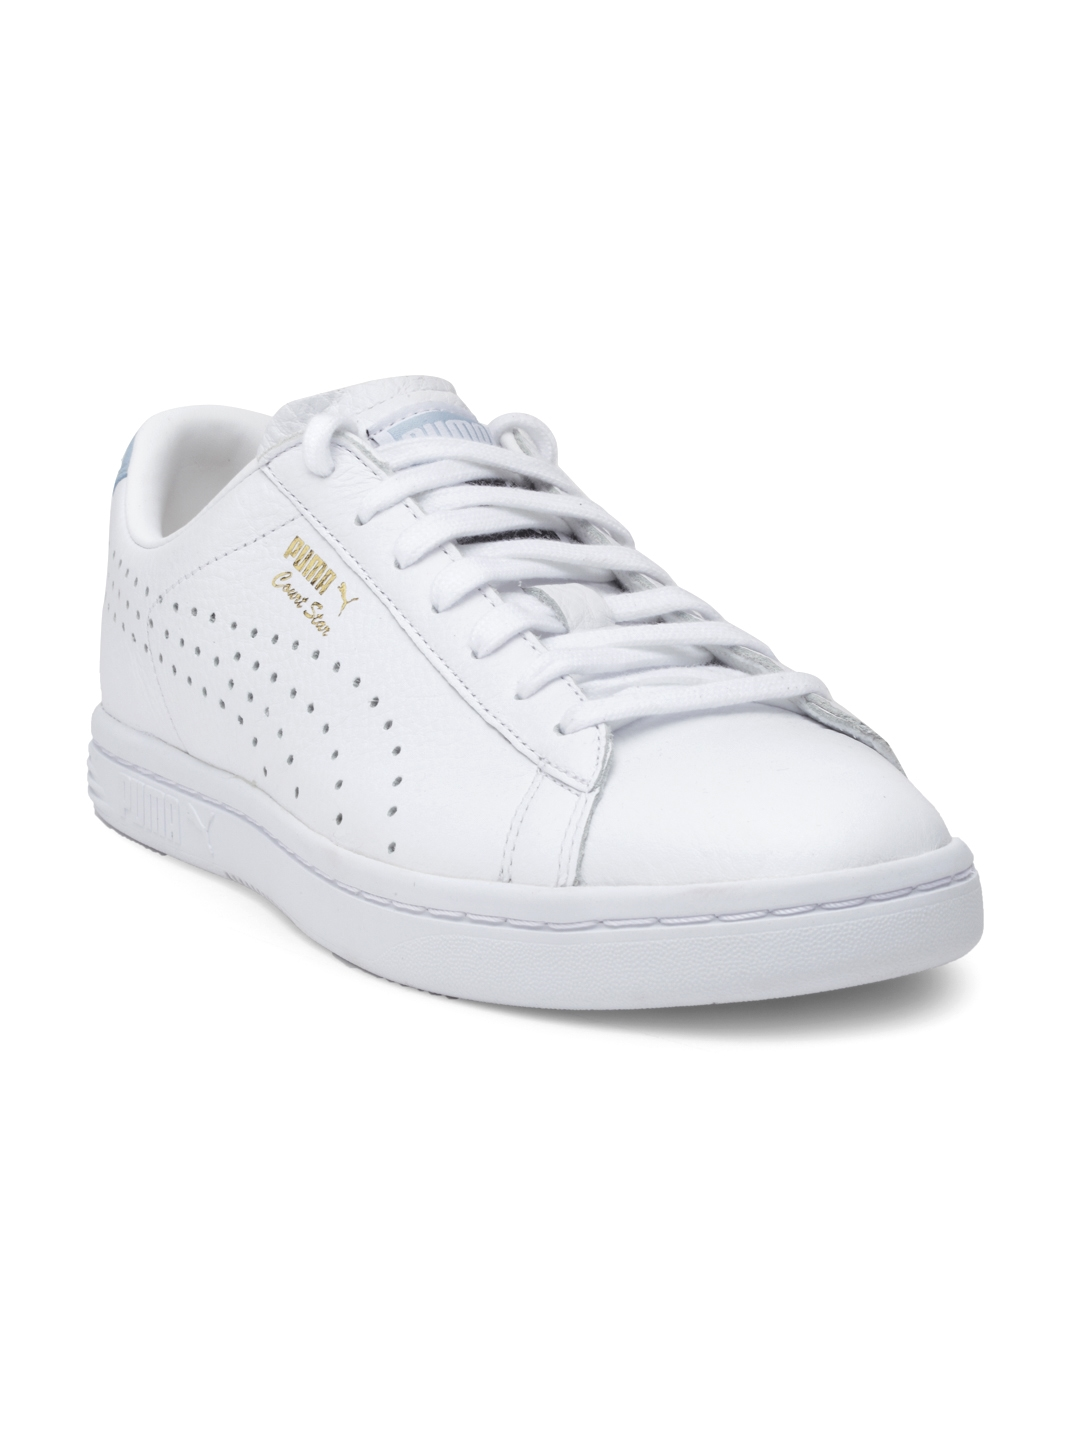 eb4218ecbe20 Buy Puma Men White Court Star NM Sneakers - Casual Shoes for Men ...